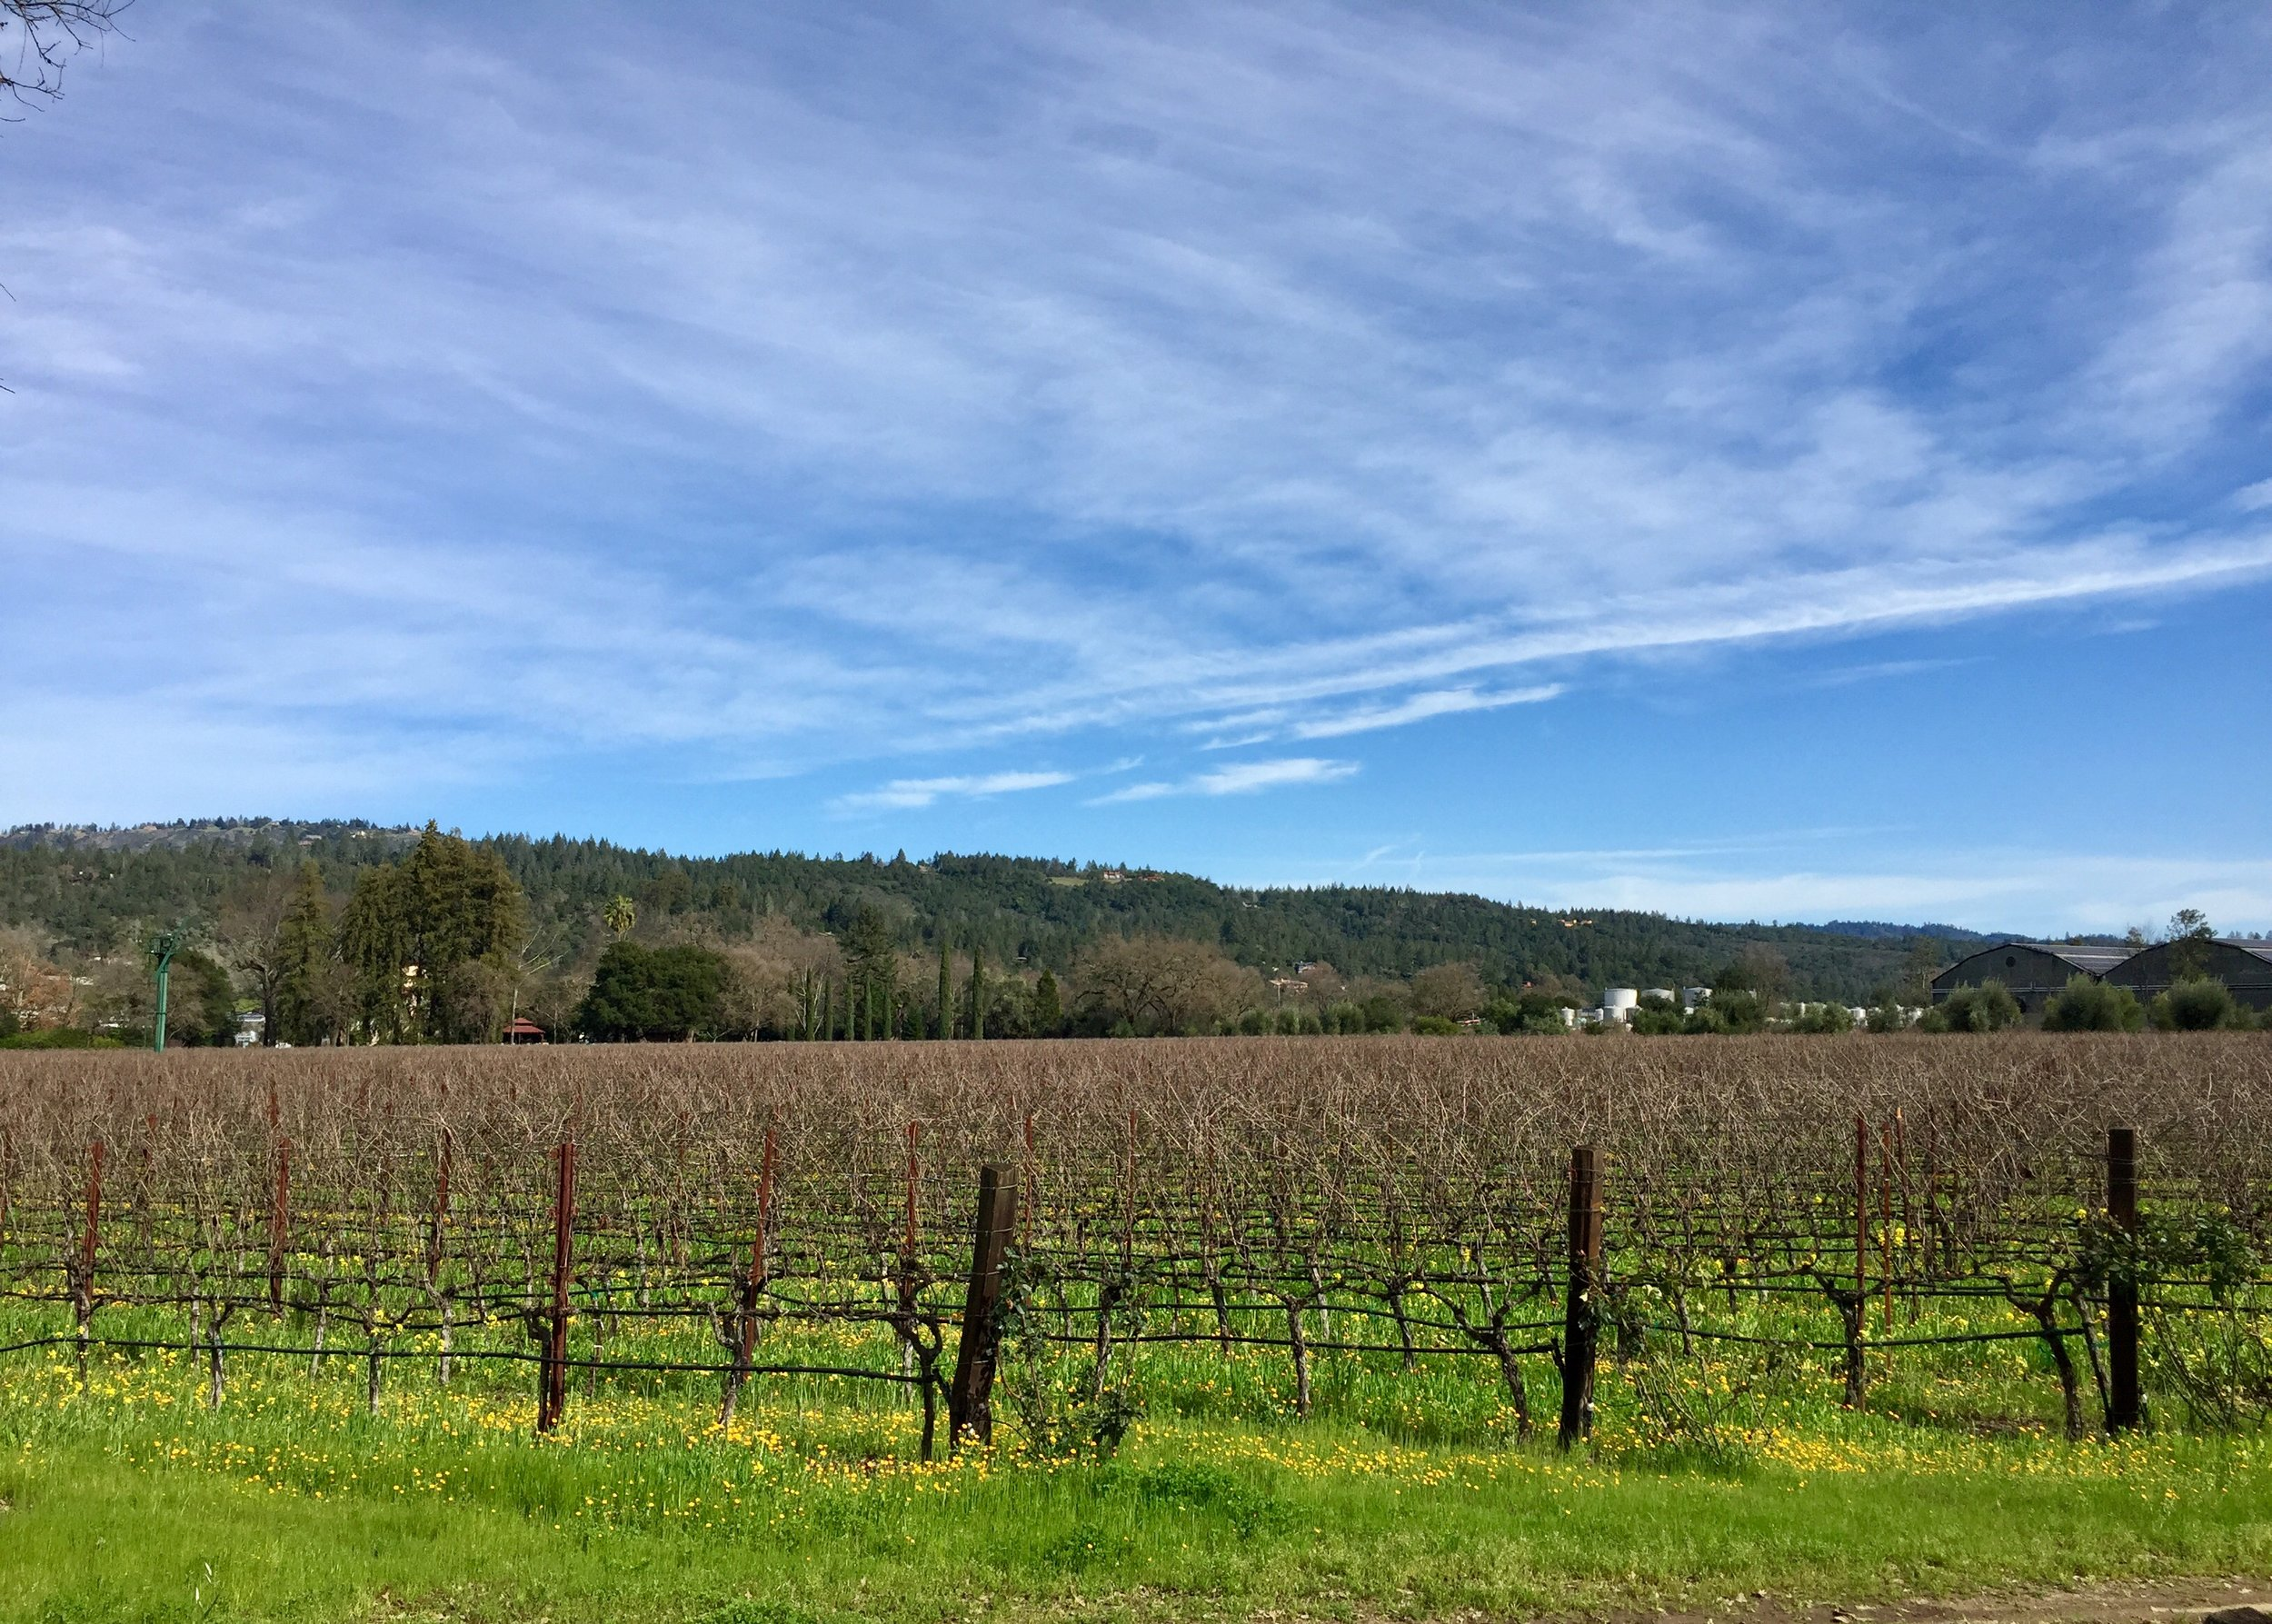 Beauty is abundant in Napa Valley